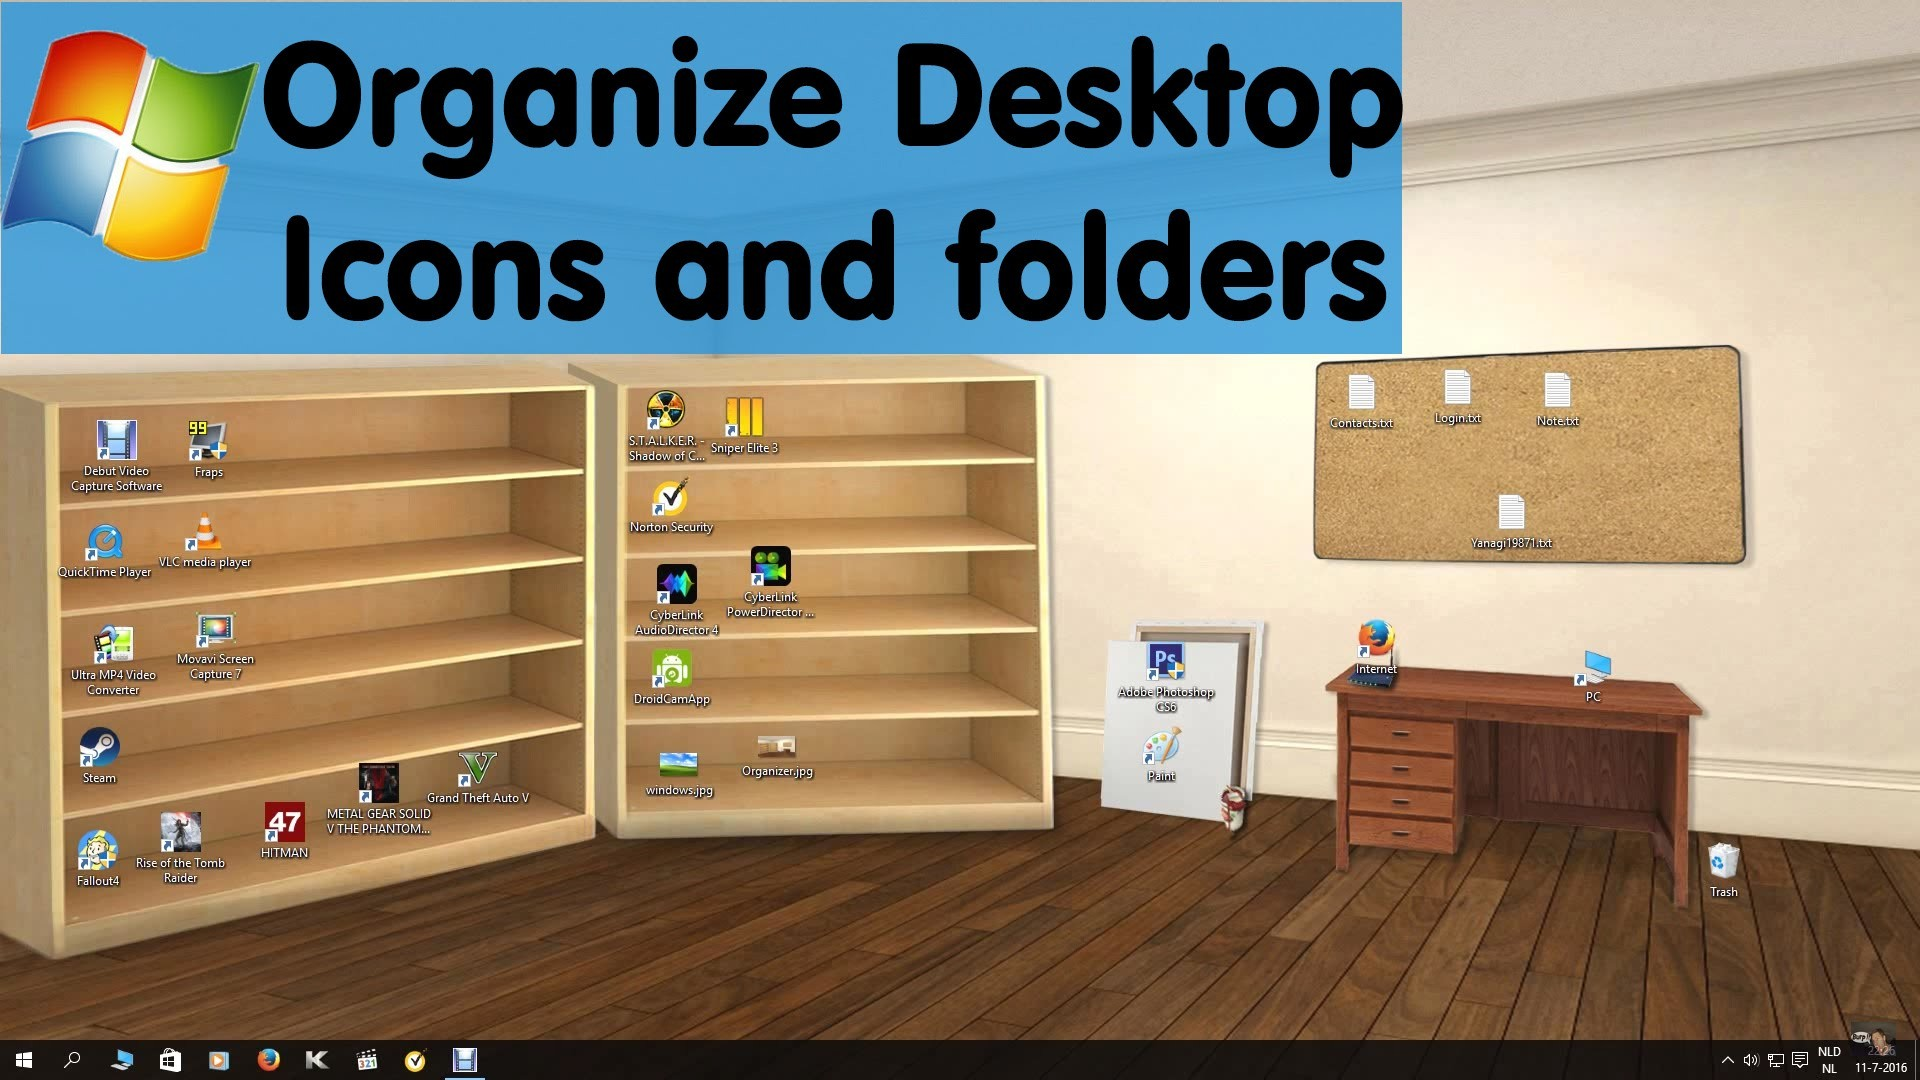 Organize Desktop Wallpaper 71 Images